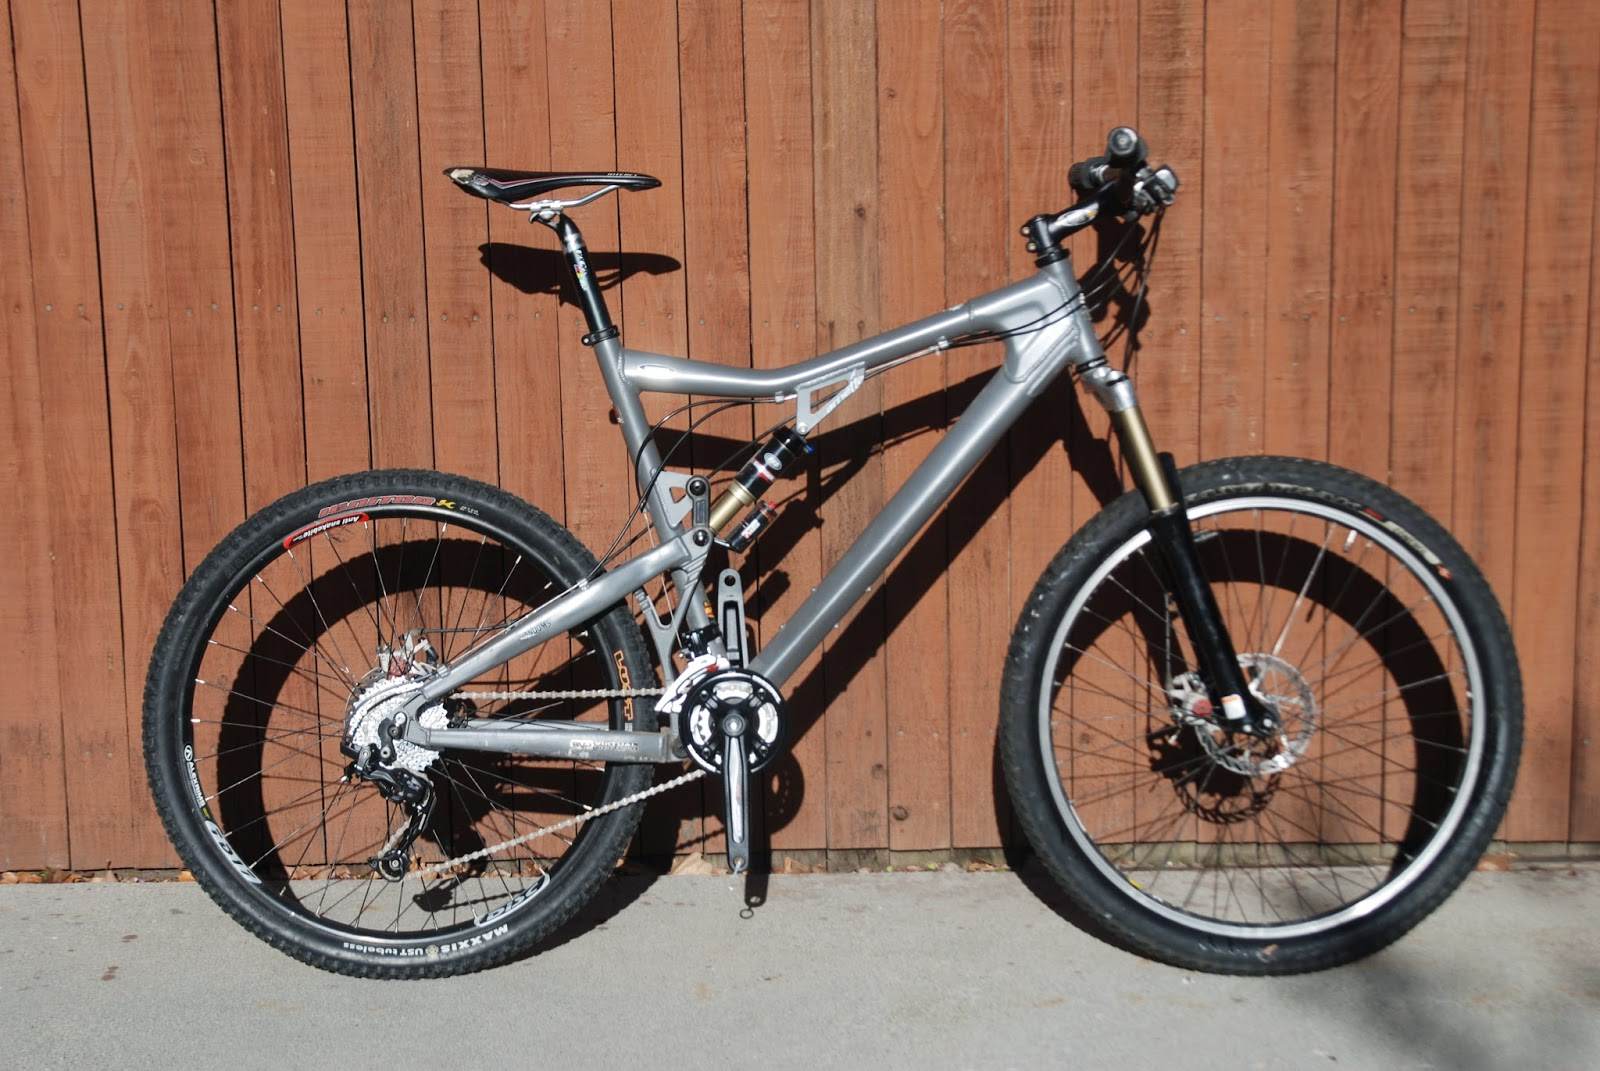 ANEX BICYCLES: February 2014